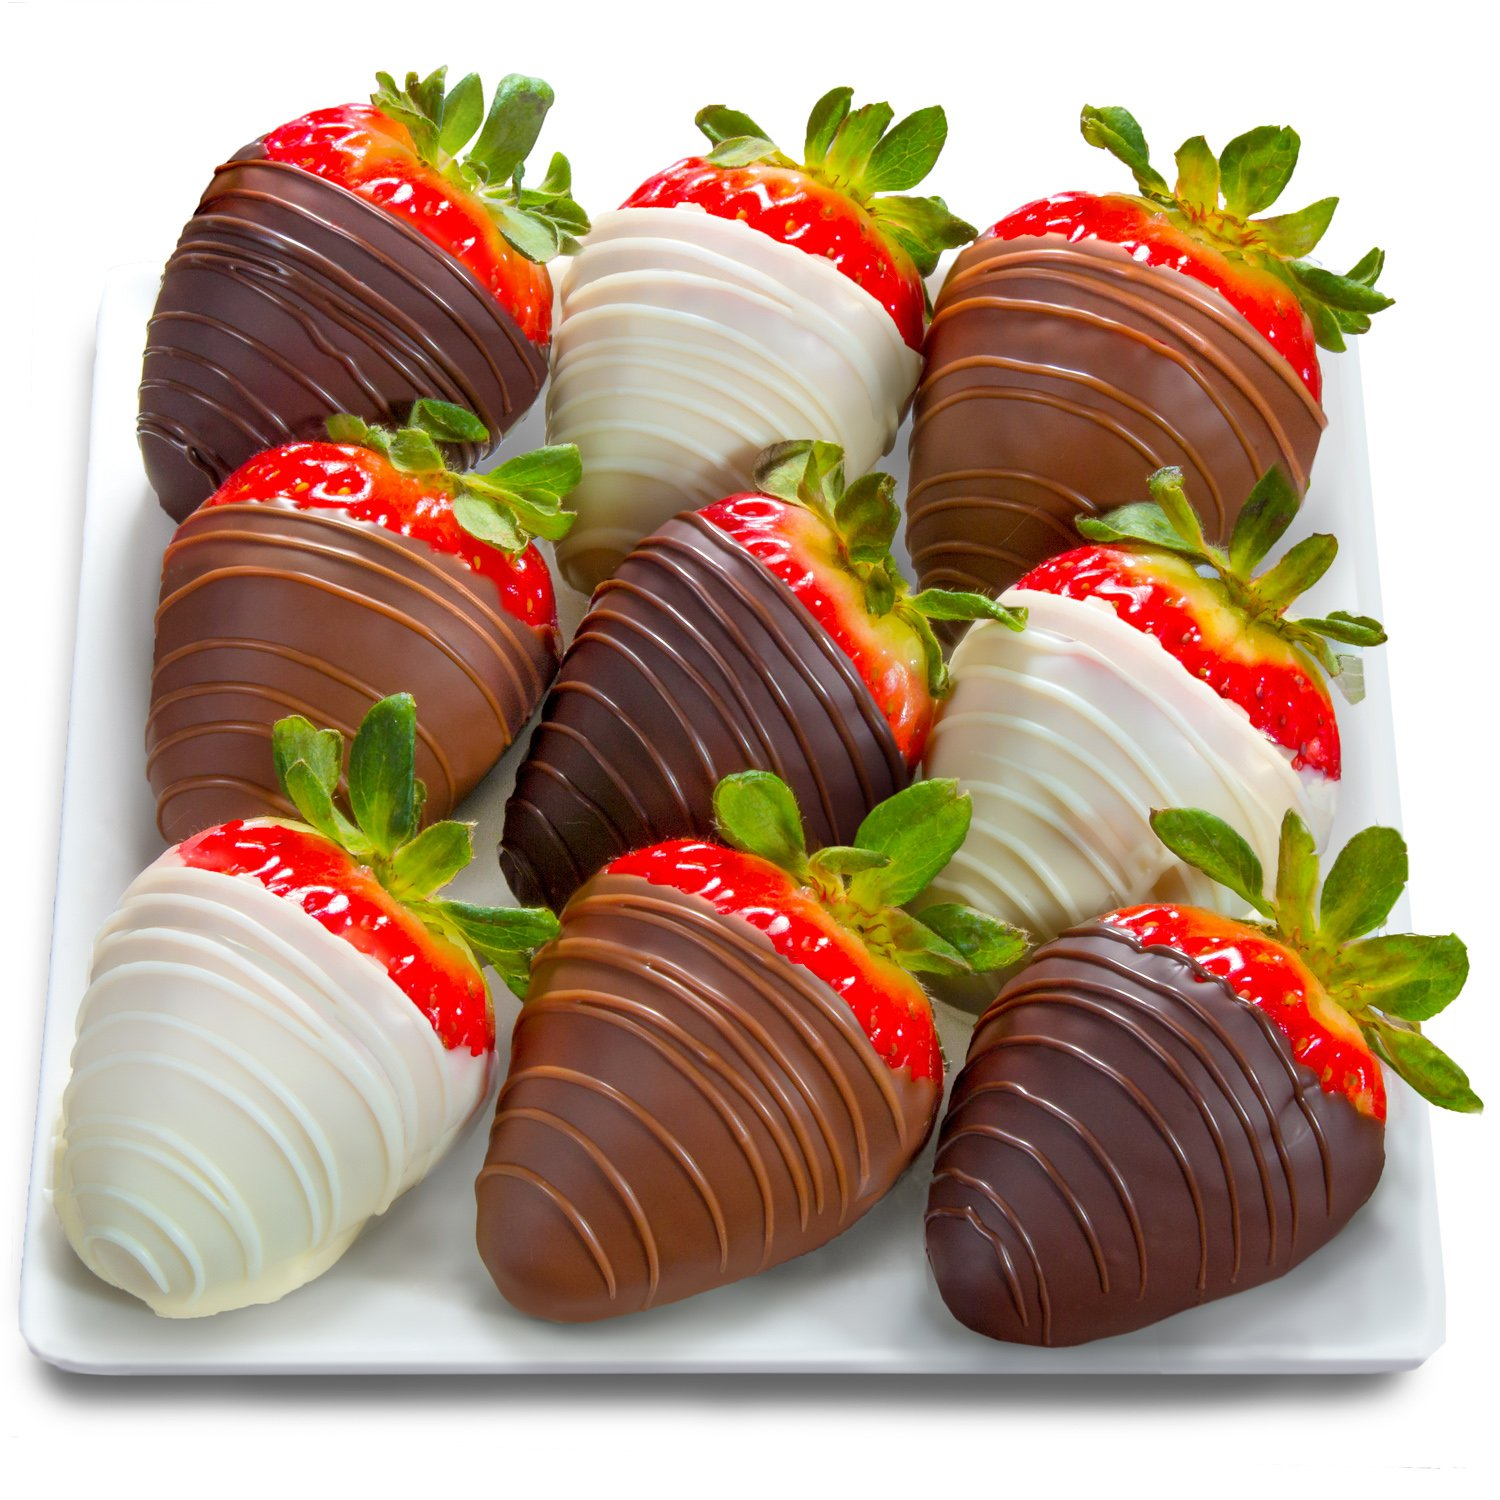 Amazon.com : Golden State Fruit 9 Piece Chocolate Covered ...